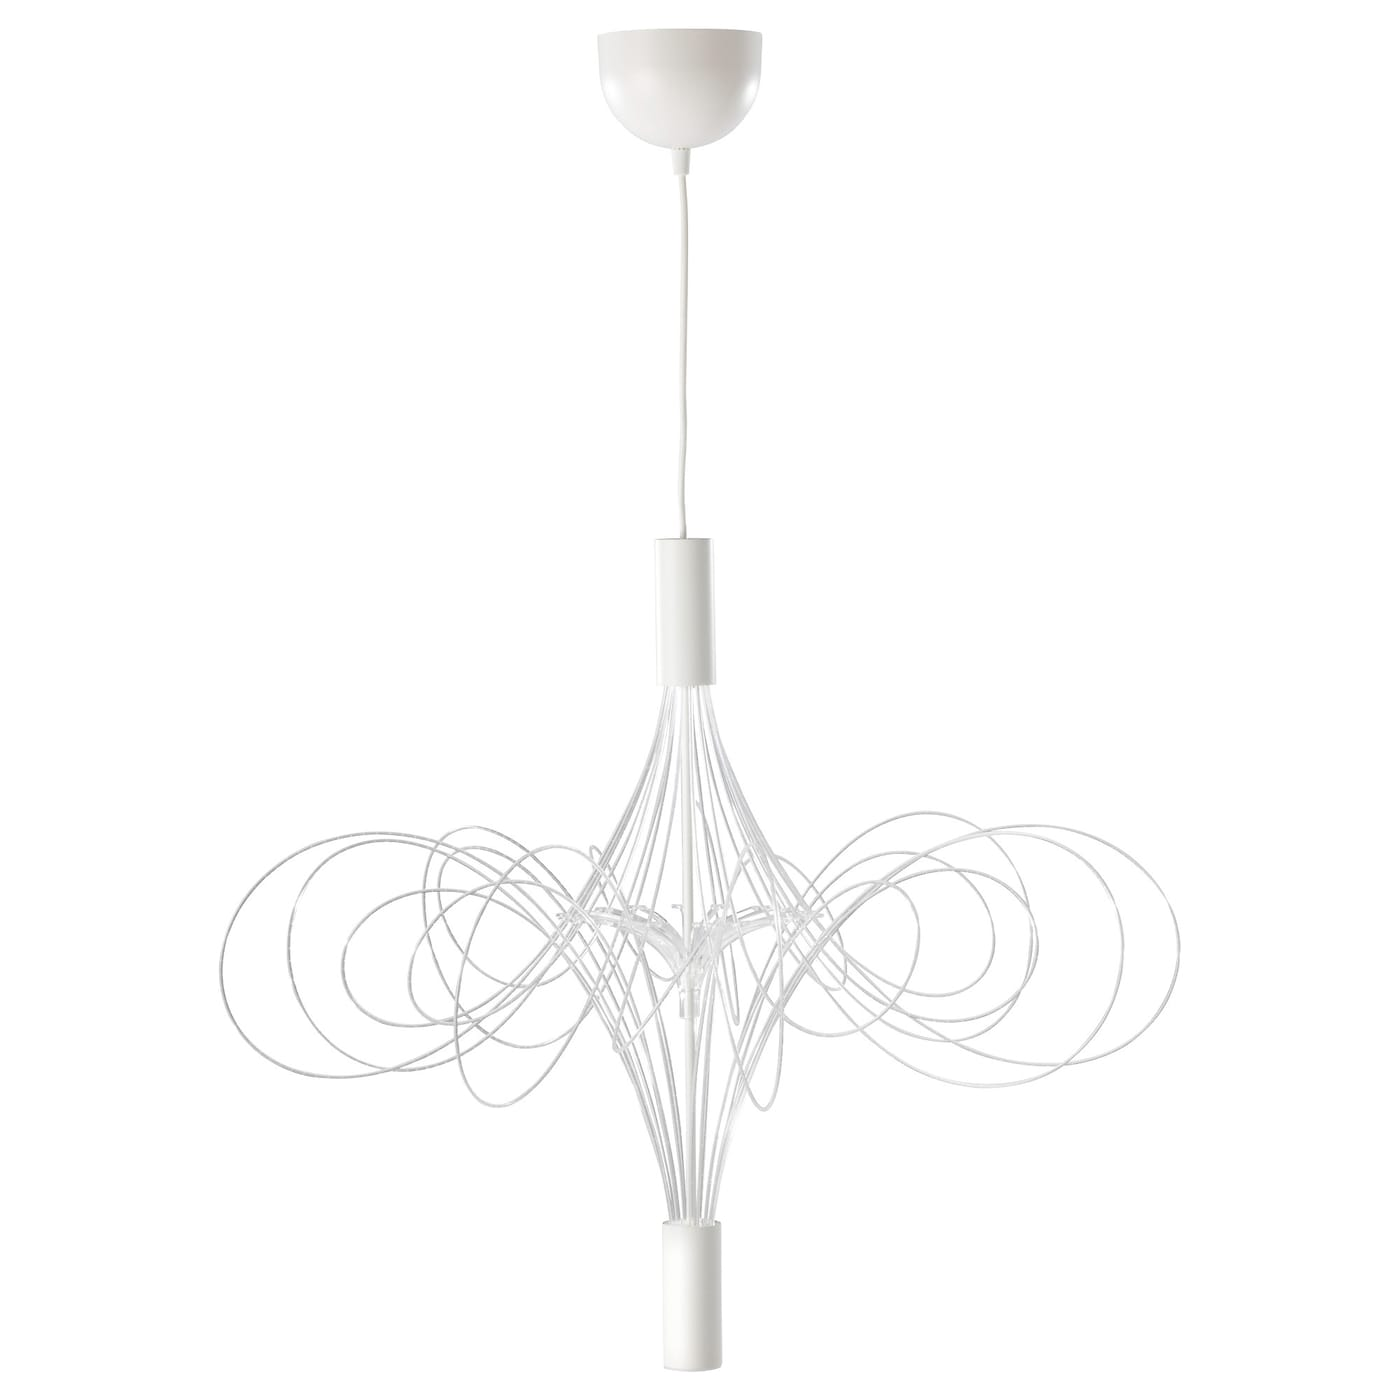 Lvsbyn led chandelier white ikea ikea lvsbyn led chandelier mozeypictures Image collections